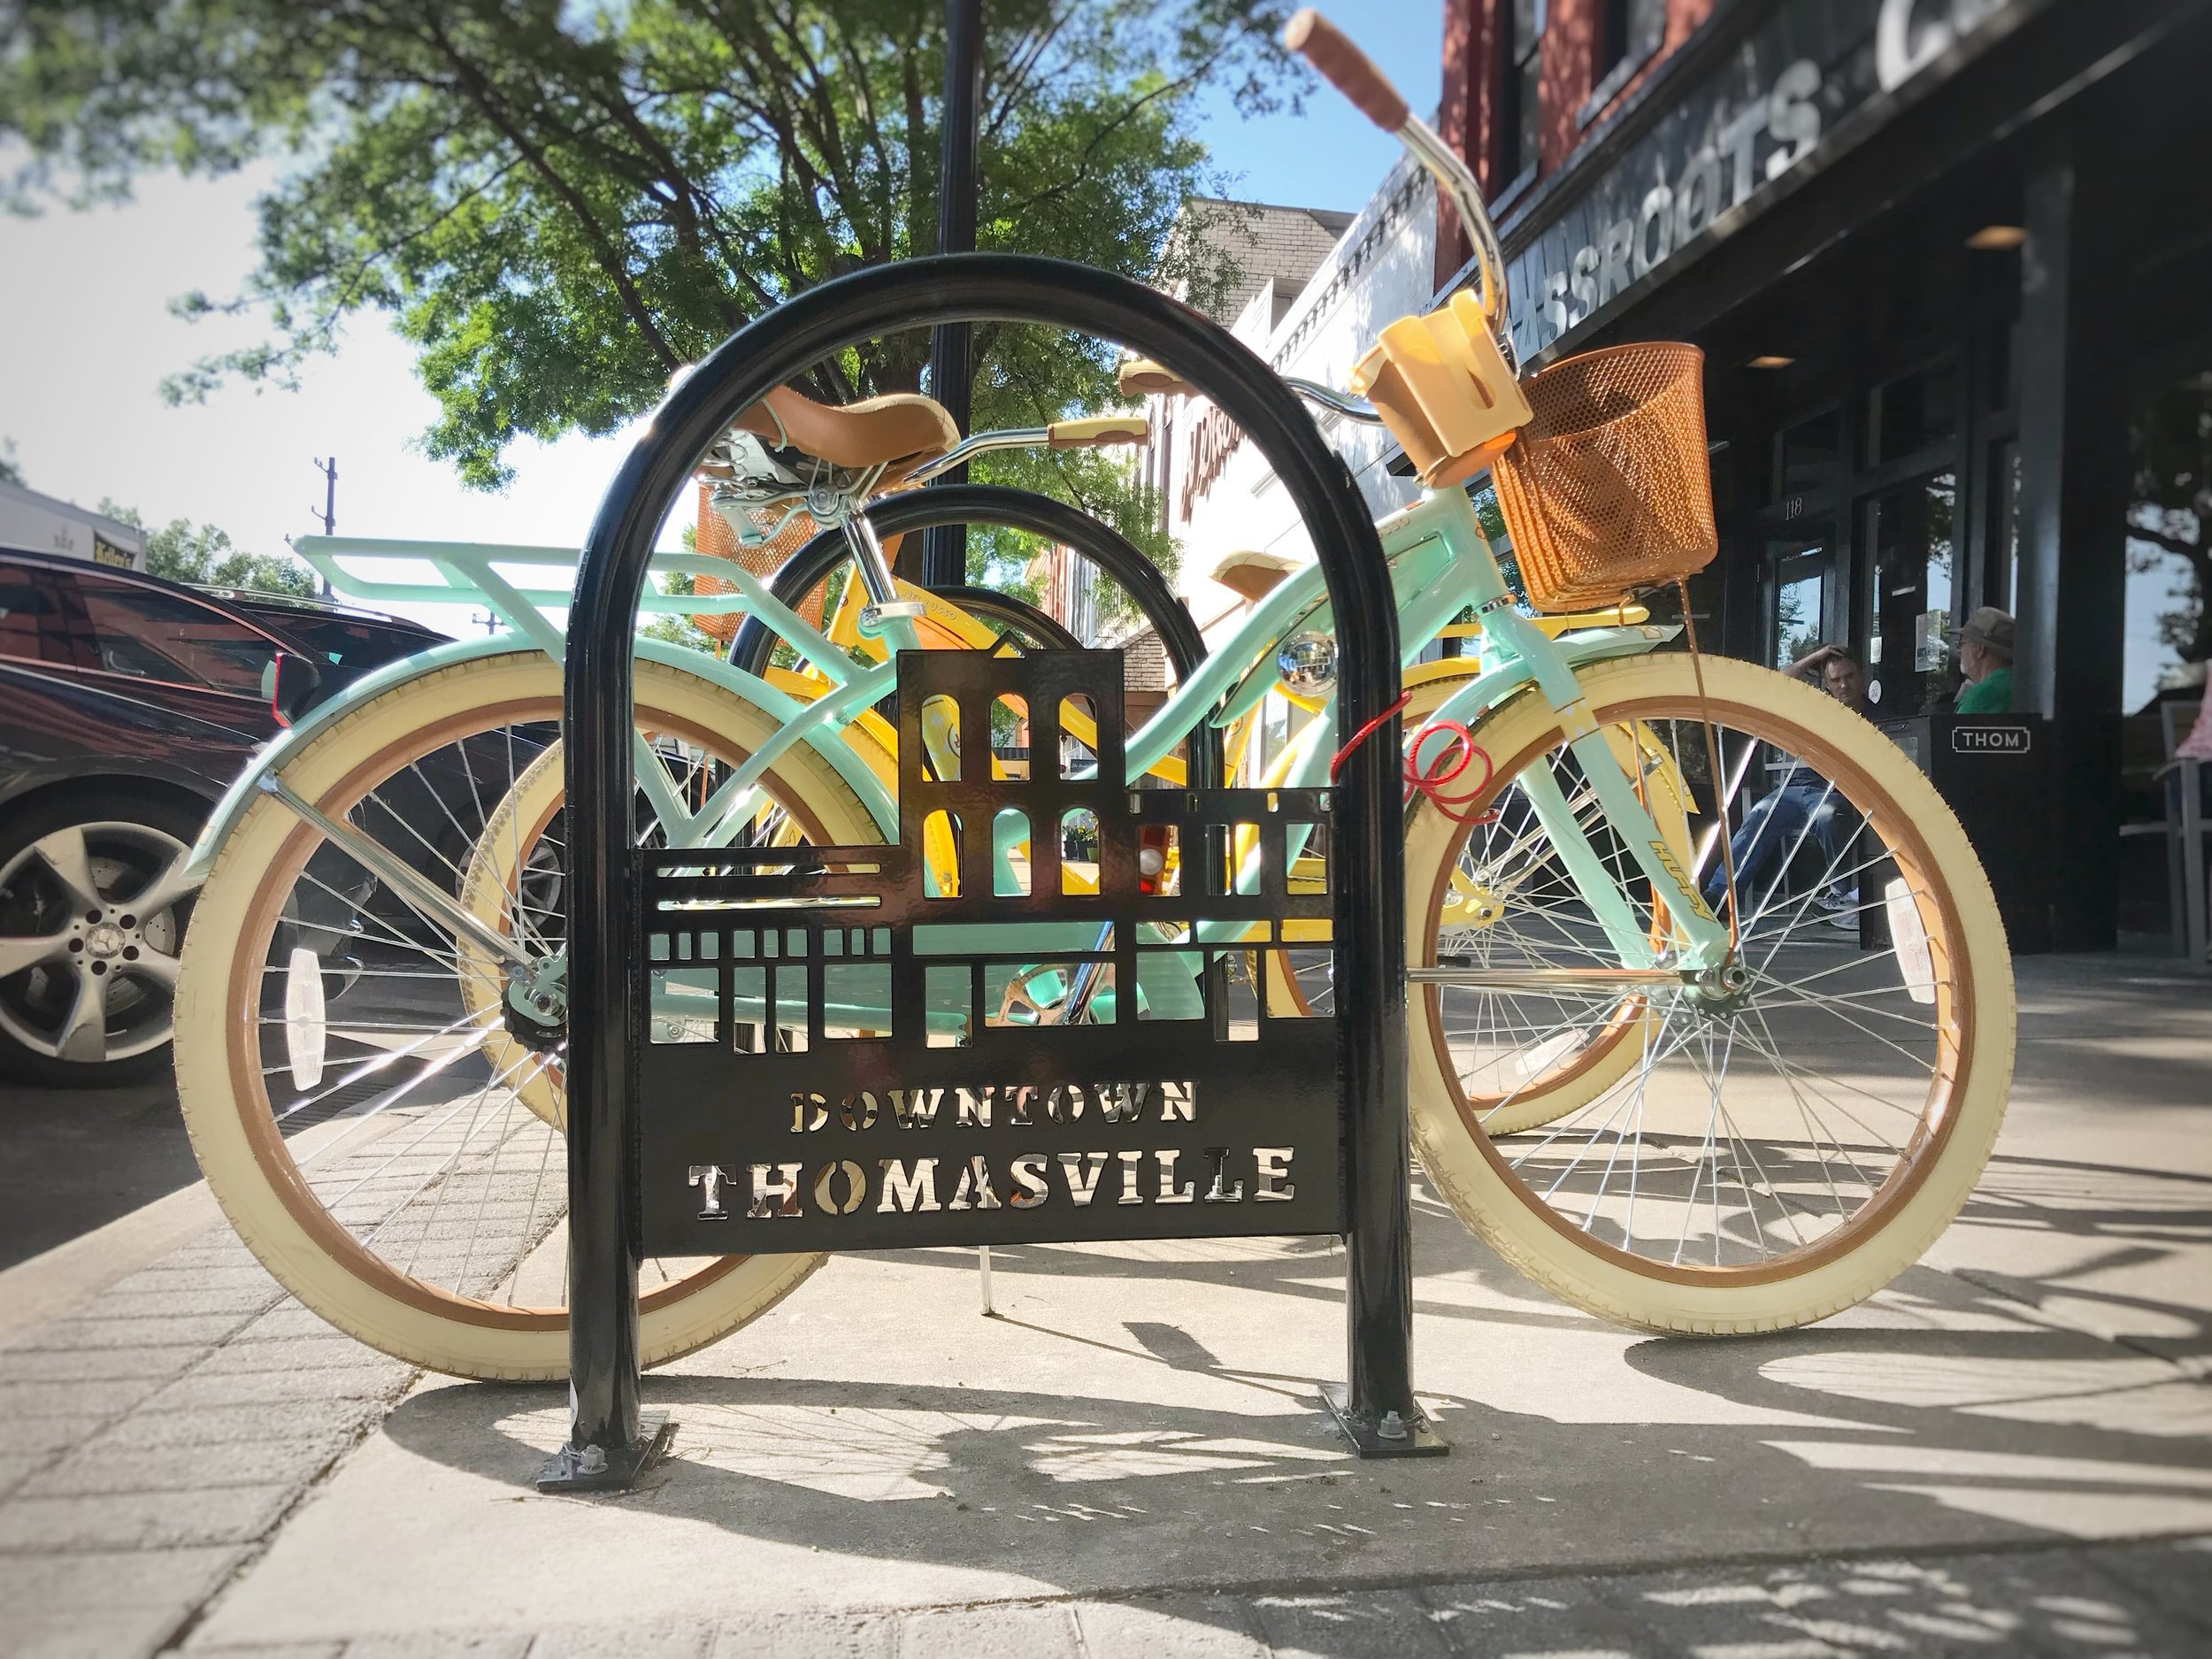 Thomasville's bike racks are designed for maximum functionality, while also including a bit of branding and fun.